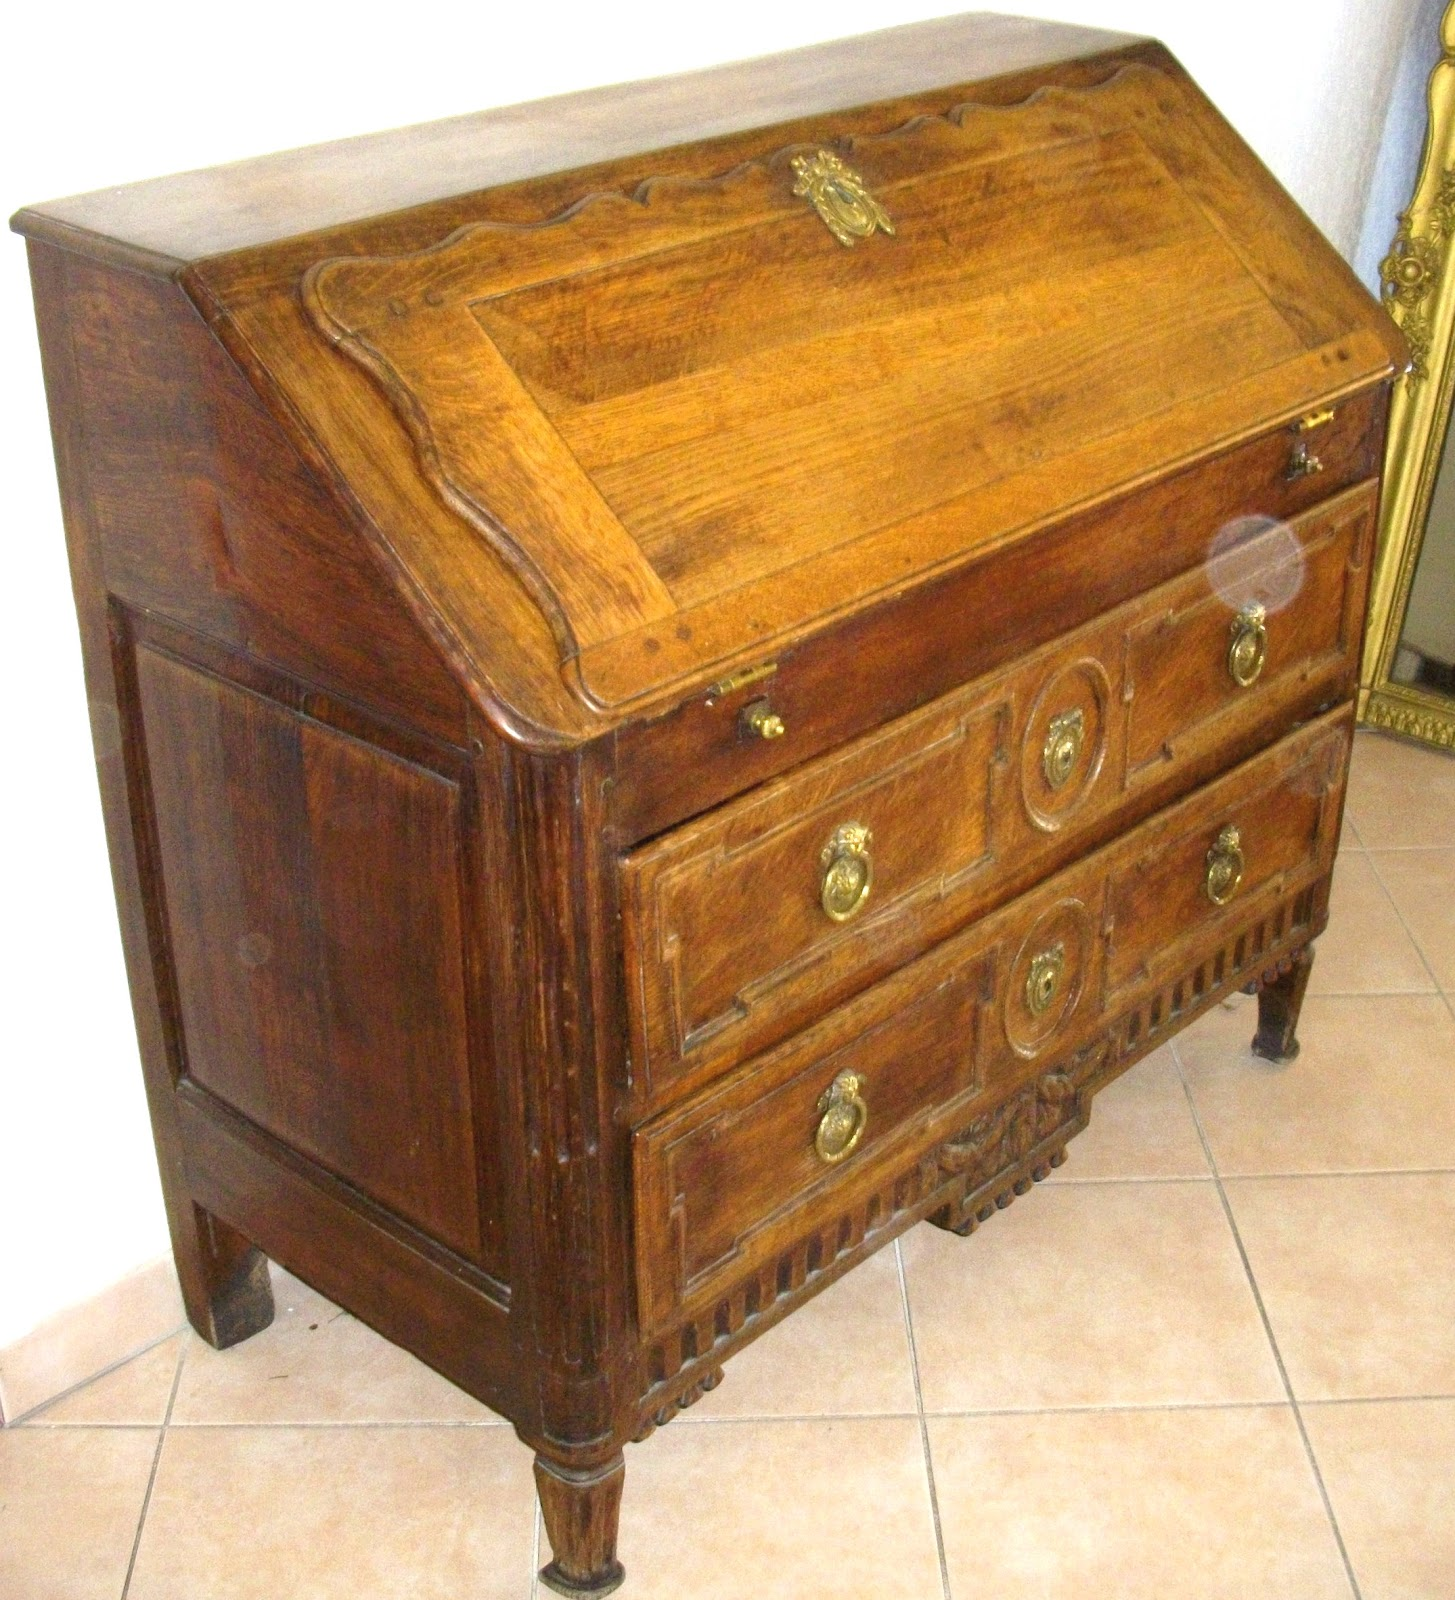 Meuble ancien bureau pente secr taire dos d 39 ane a secret for Meuble bureau tiroir